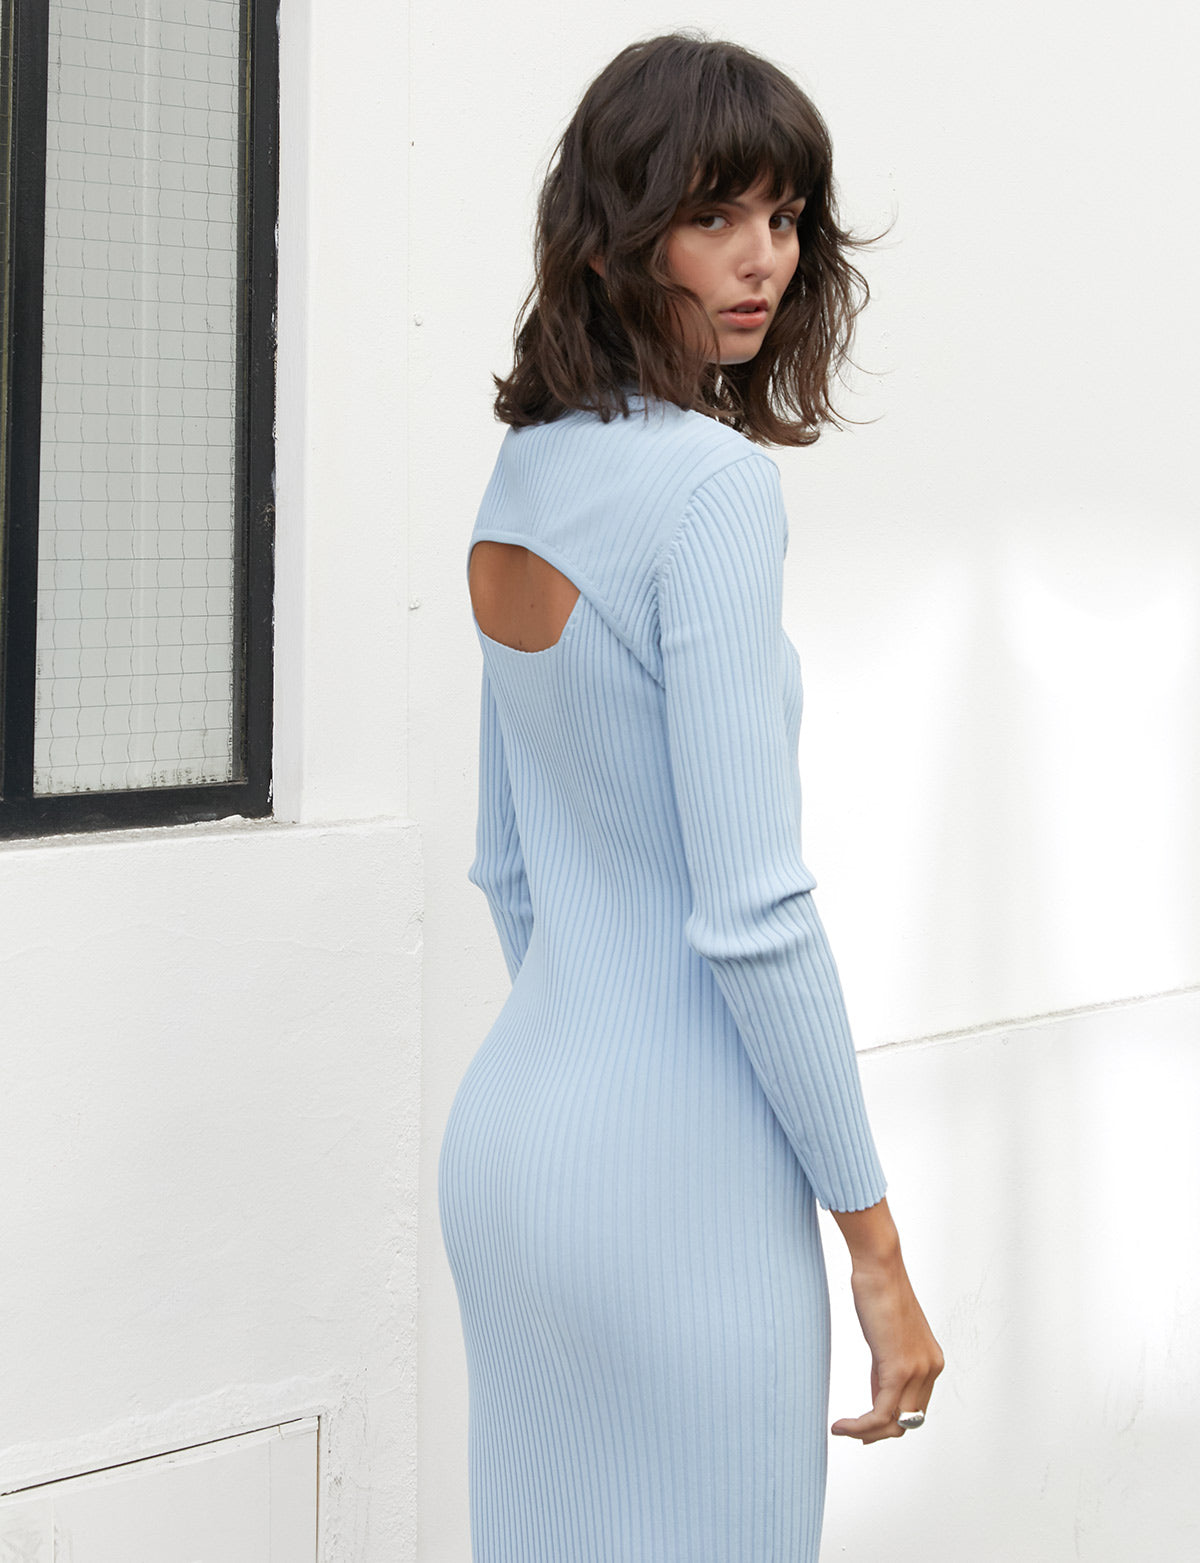 Powder Blue Knit Bolero and Dress Set